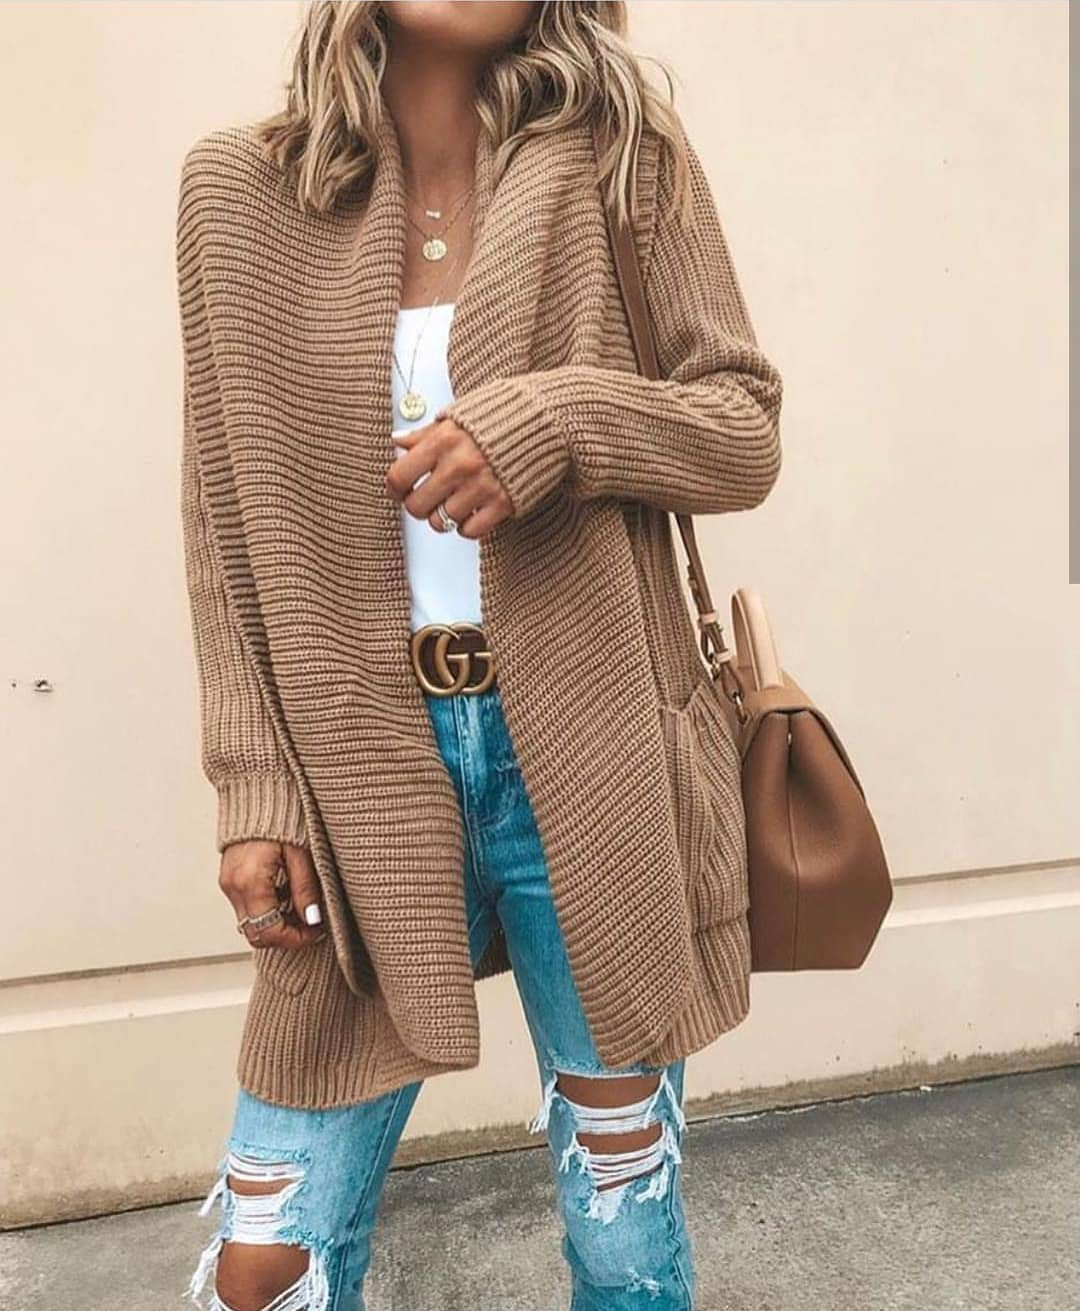 Cream Beige Cardigan In Oversized Fit And Ripped Wash Blue Jeans For Spring 2019